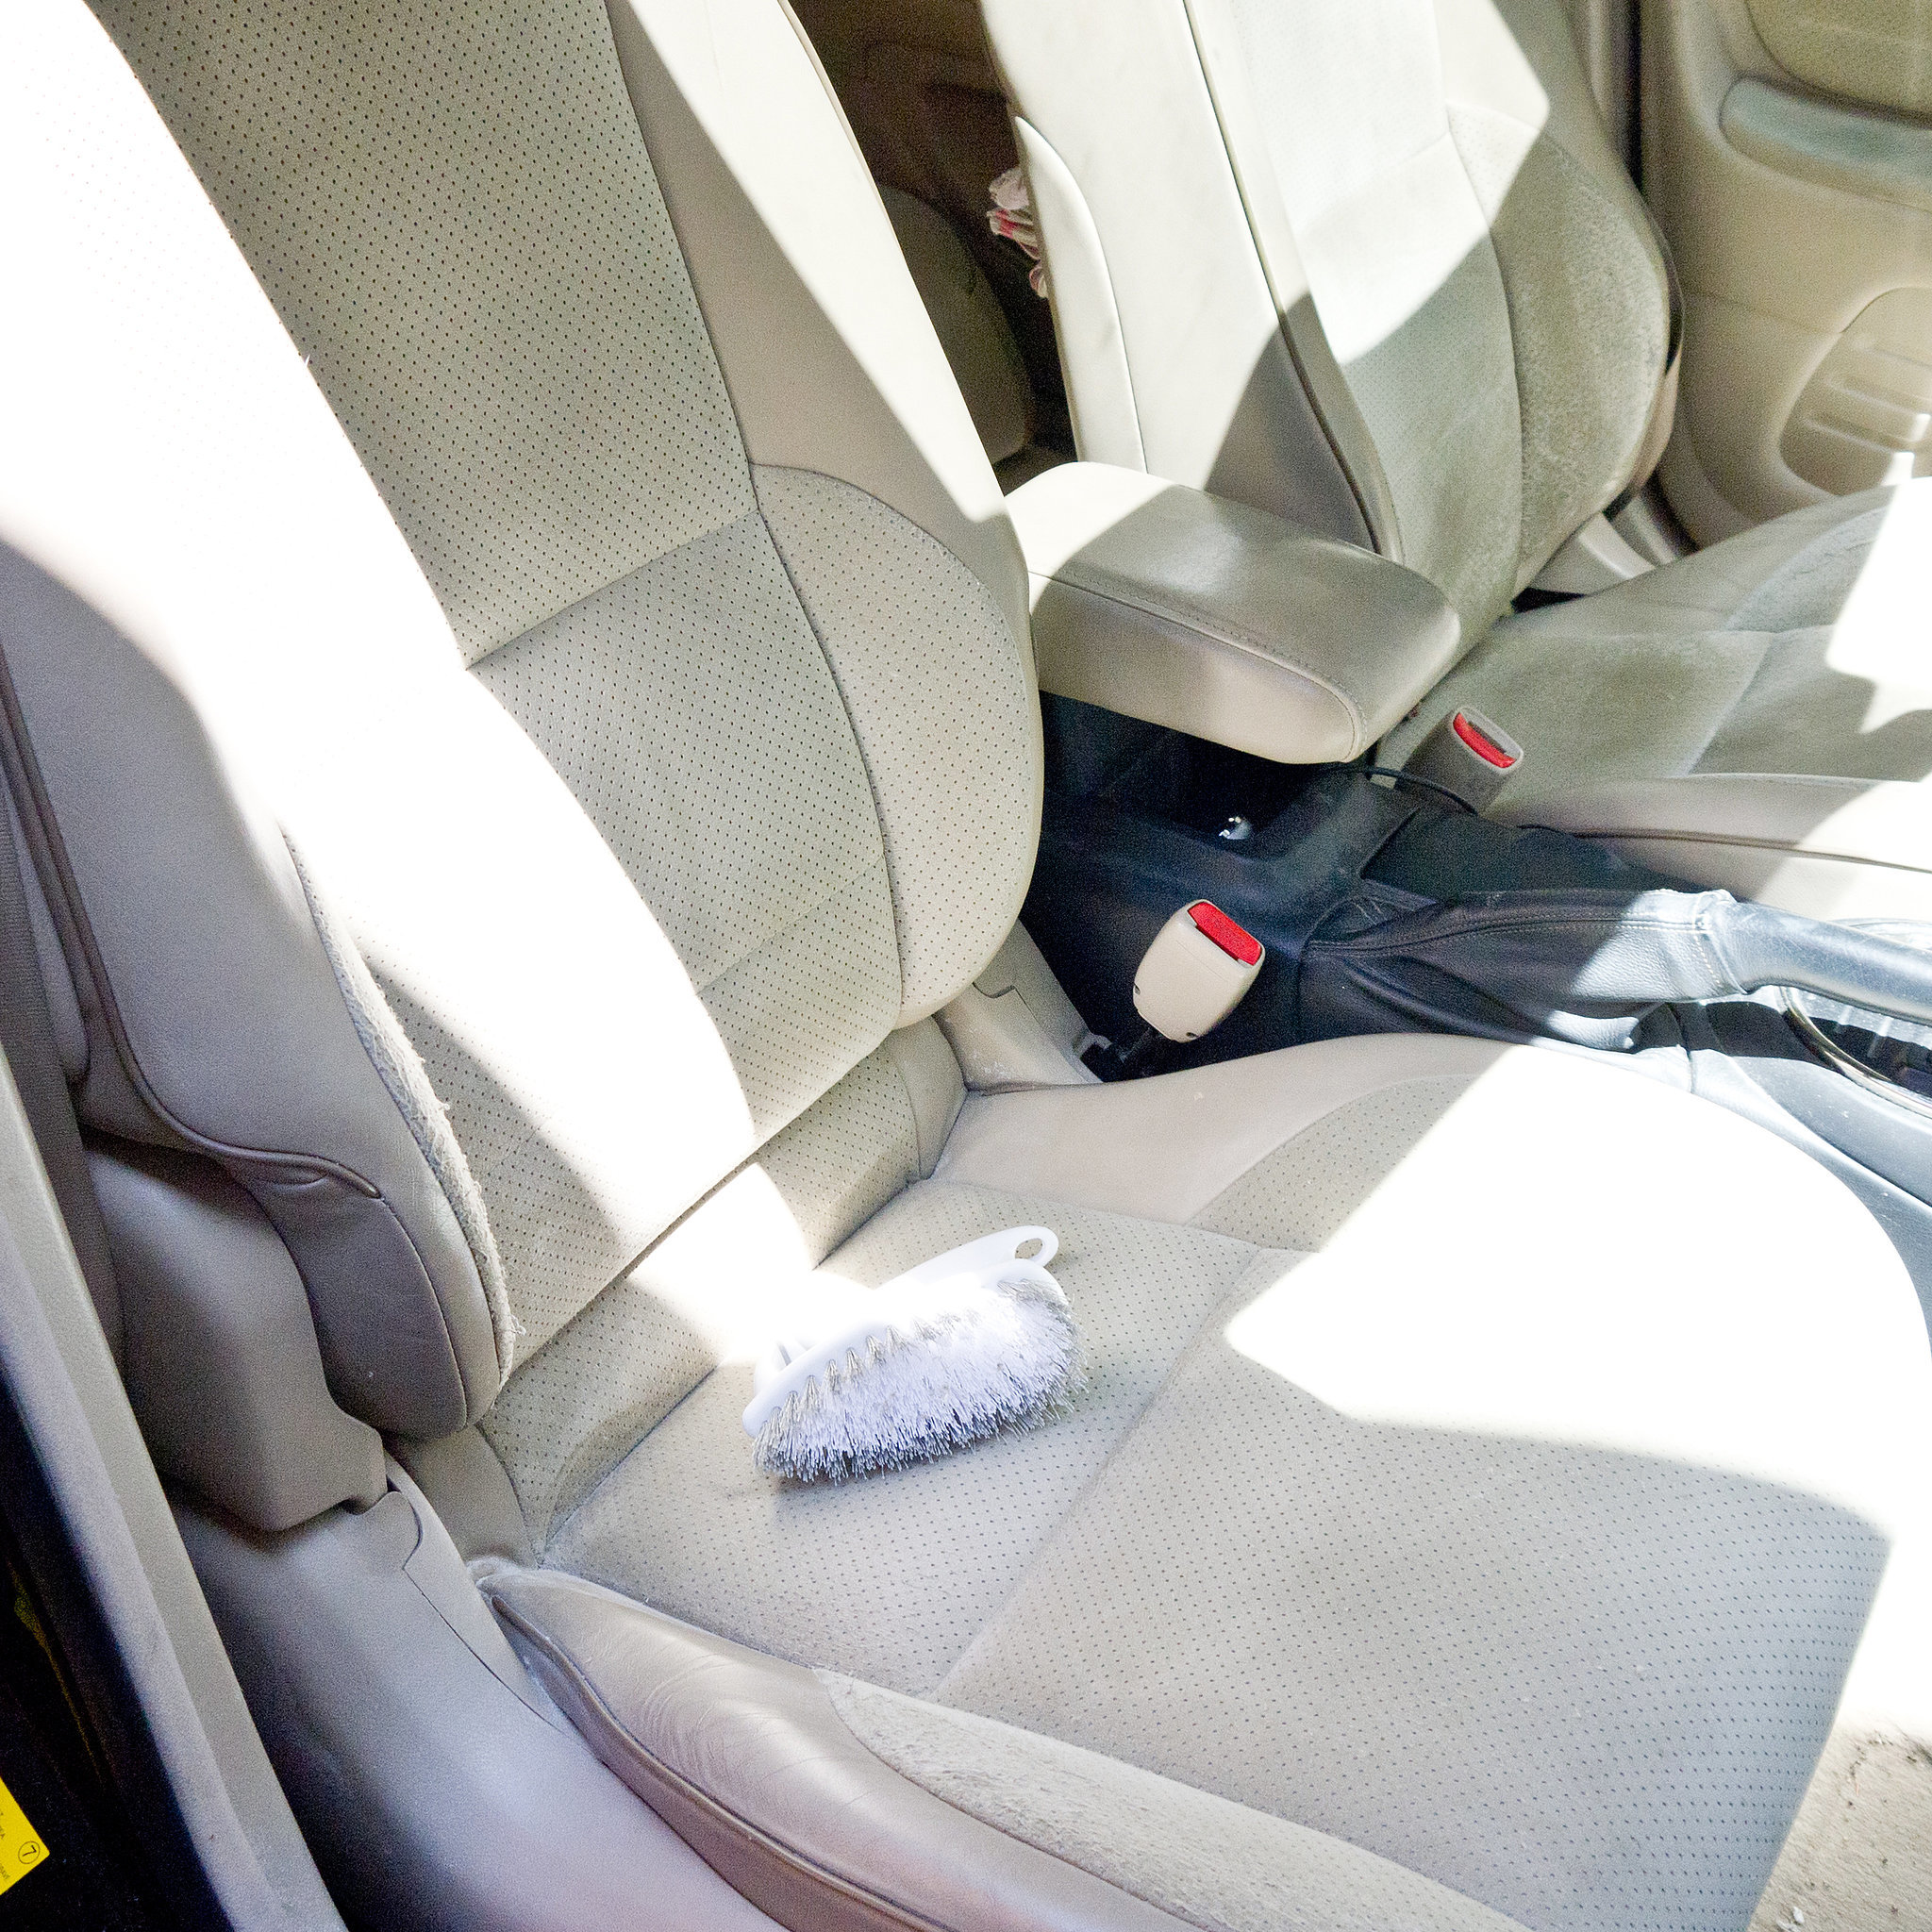 best stain remover for fabric sofa tantra malaysia how to clean car seats popsugar australia smart living